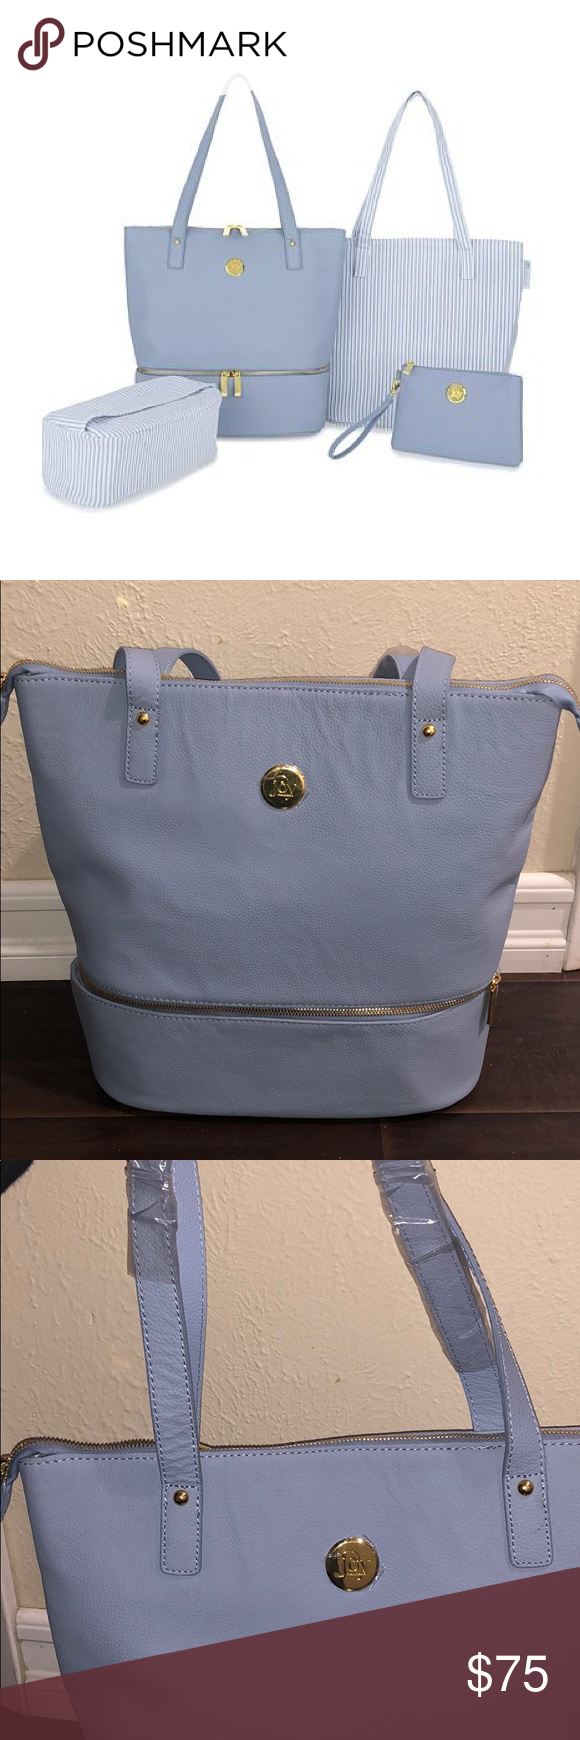 f45d91f05a7 Brand new light blue tote bag JOY Smart   Chic Leather Handbag Set with  Secret Section and More 100% leather bag Comes with as pictured Little bag  included ...